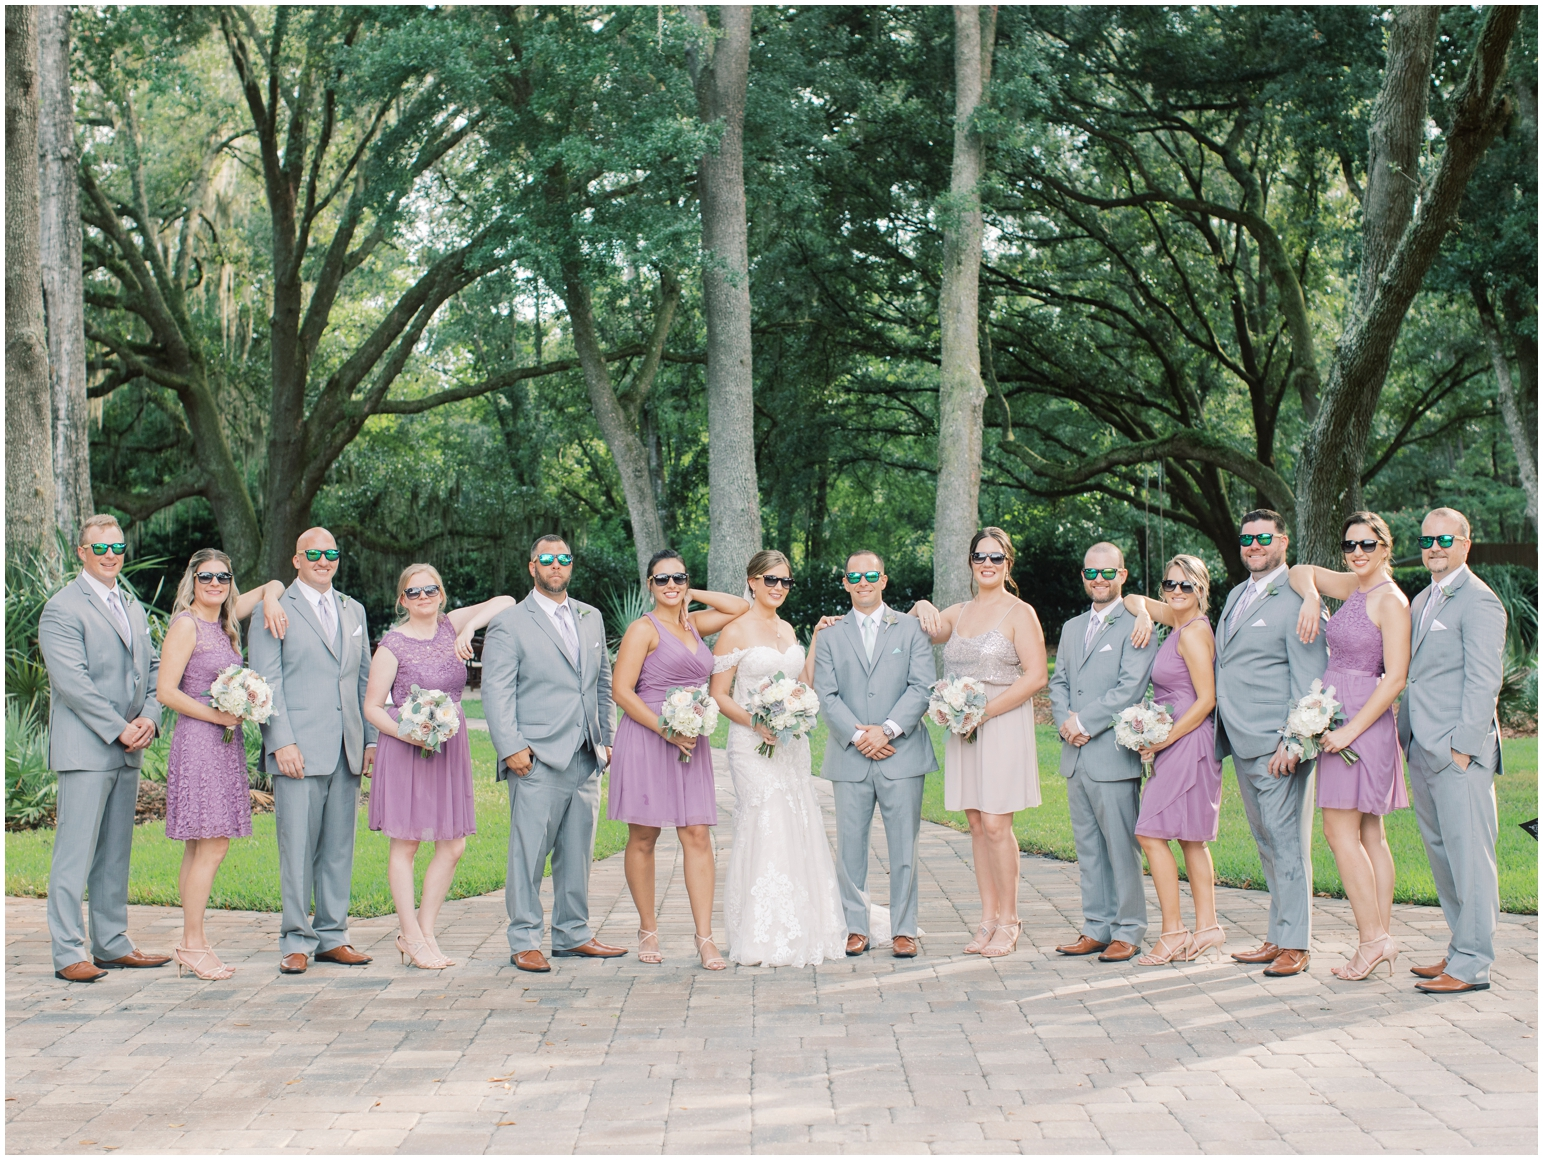 Lisa Silva Photography- Jacksonville, St Augustine, Fernandina Beach, Amelia Island, Ponte Vedra Beach, North East Florida Fine Art Film Photographer- Ashley and Shawn's wedding at bowing oaks plantation_0072.jpg